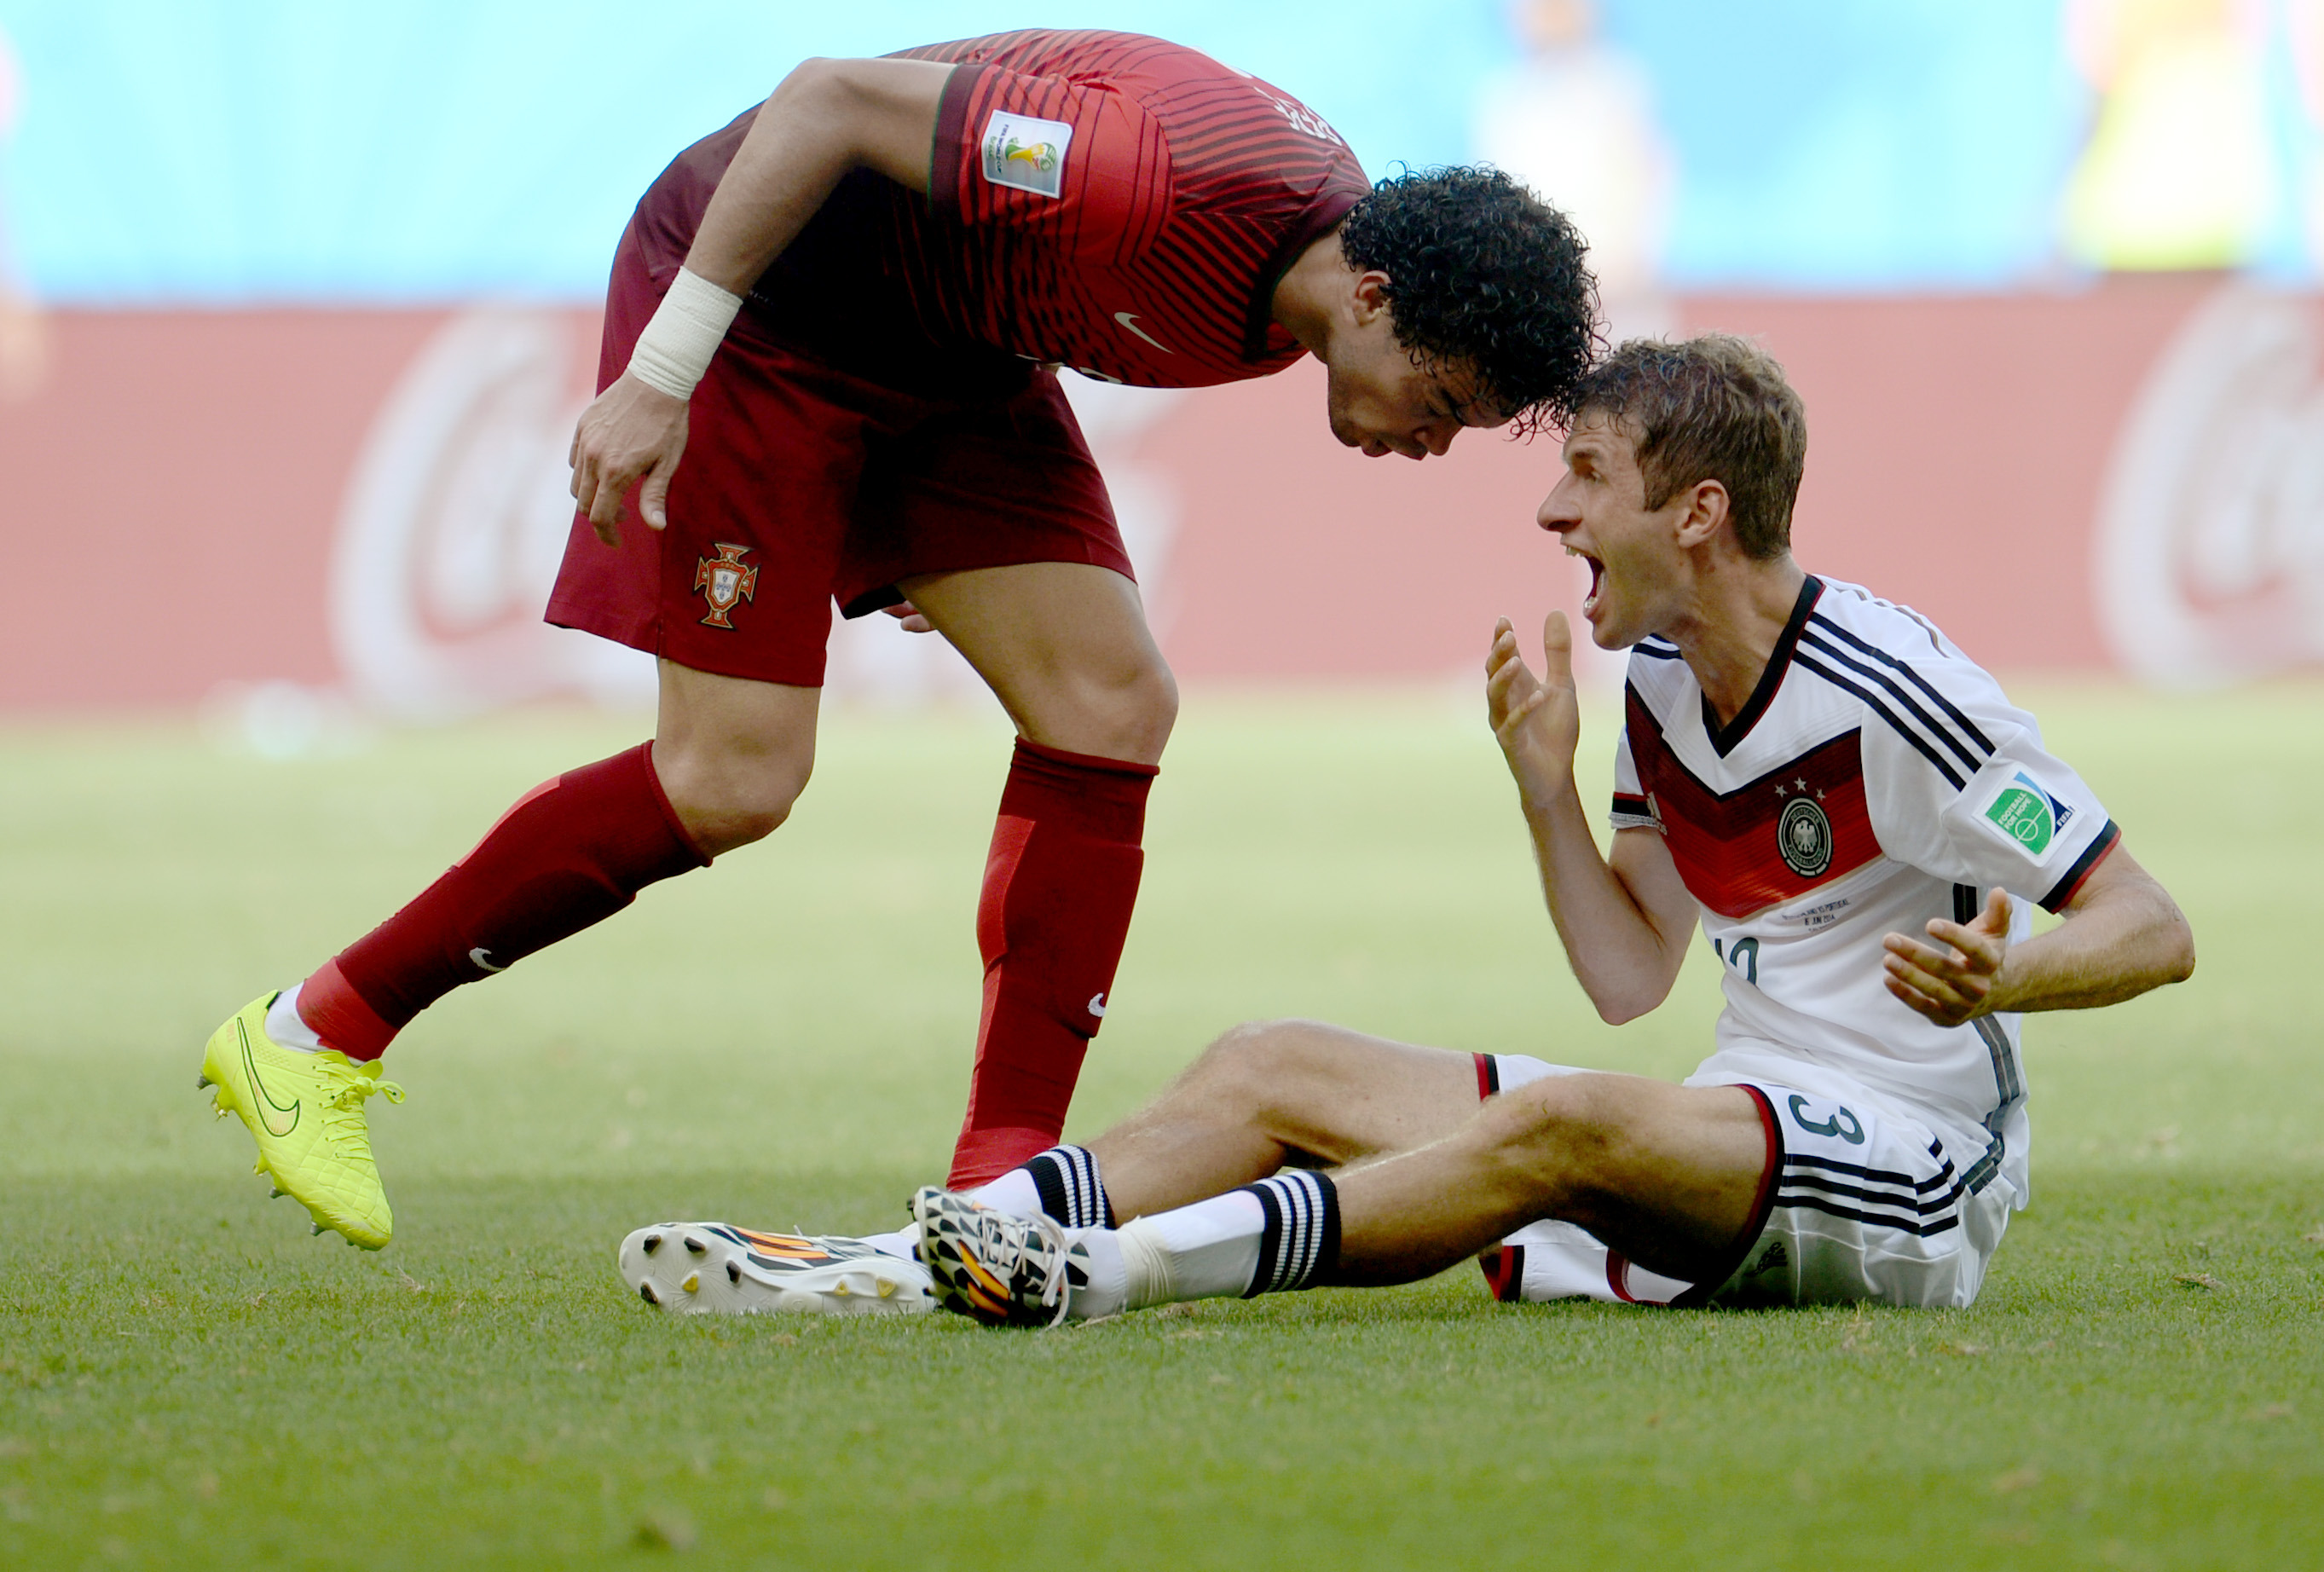 Pepe of Portugal argues with Thomas Müller of Germany and gives him a headbutt during to the FIFA World Cup 2014 group G preliminary round match between Germany and Portugal at the Arena Fonte Nova Stadium in Salvador da Bahia, Brazil on June 16, 2014.